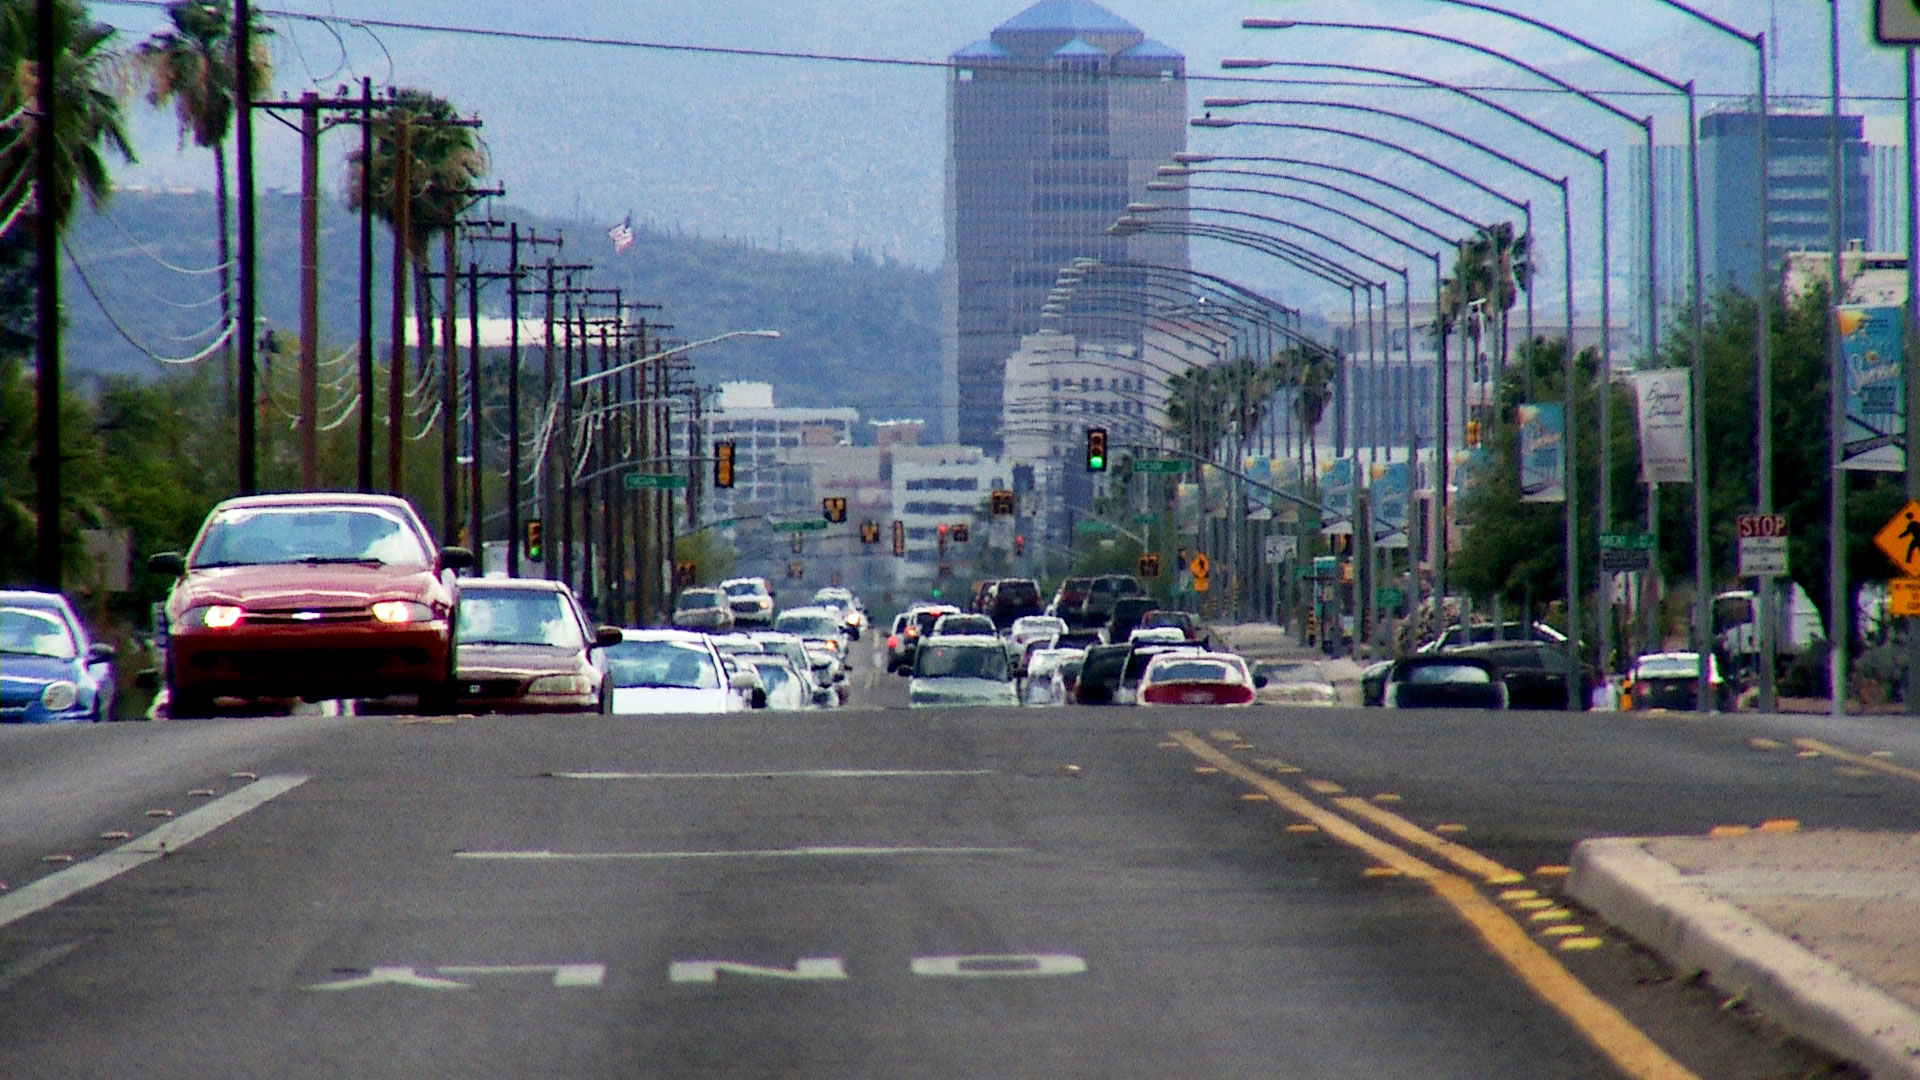 Downtown Tucson is seen in the distance from the intersection of Broadway Boulevard and Country Club Road.